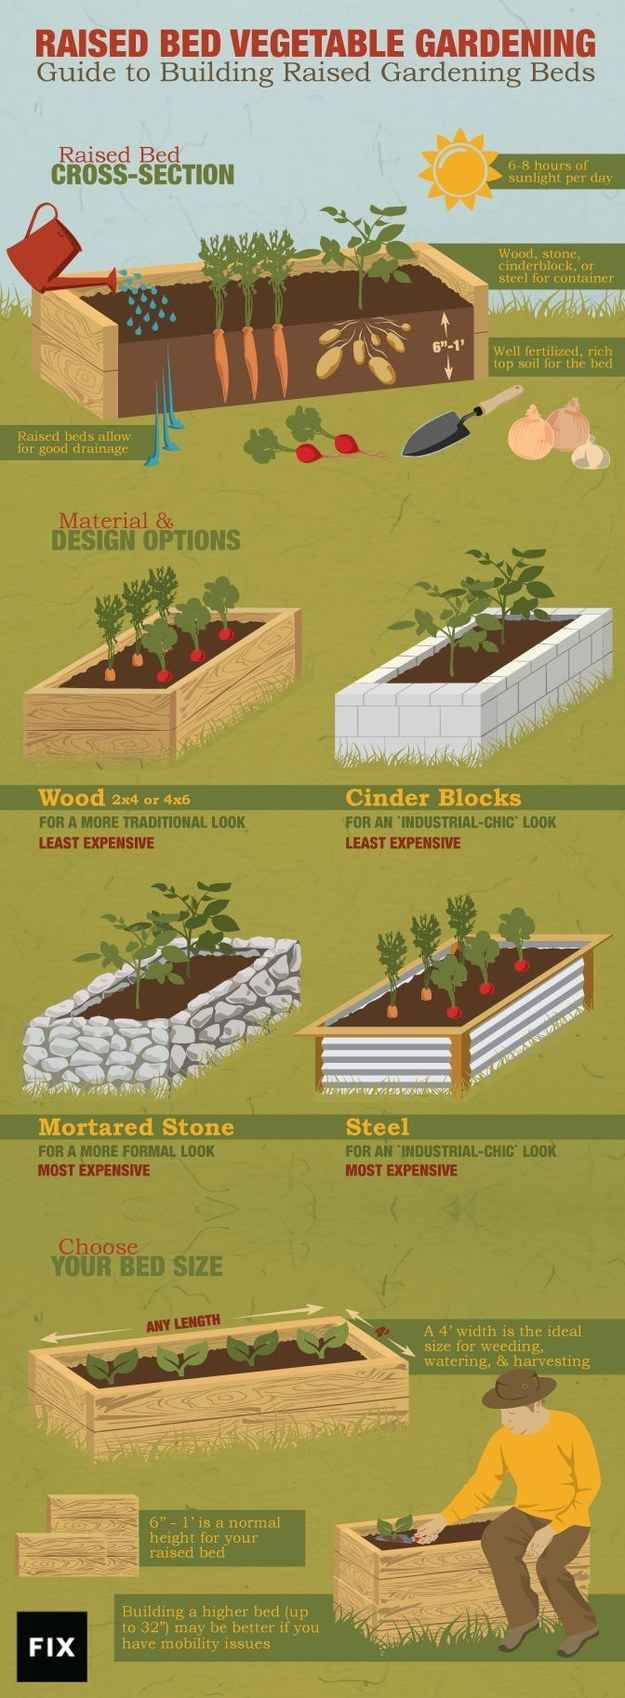 medium resolution of raised gardening beds keep vegetables away from contaminated soil can deter some pests and are easier on backs and knees here s some information about how